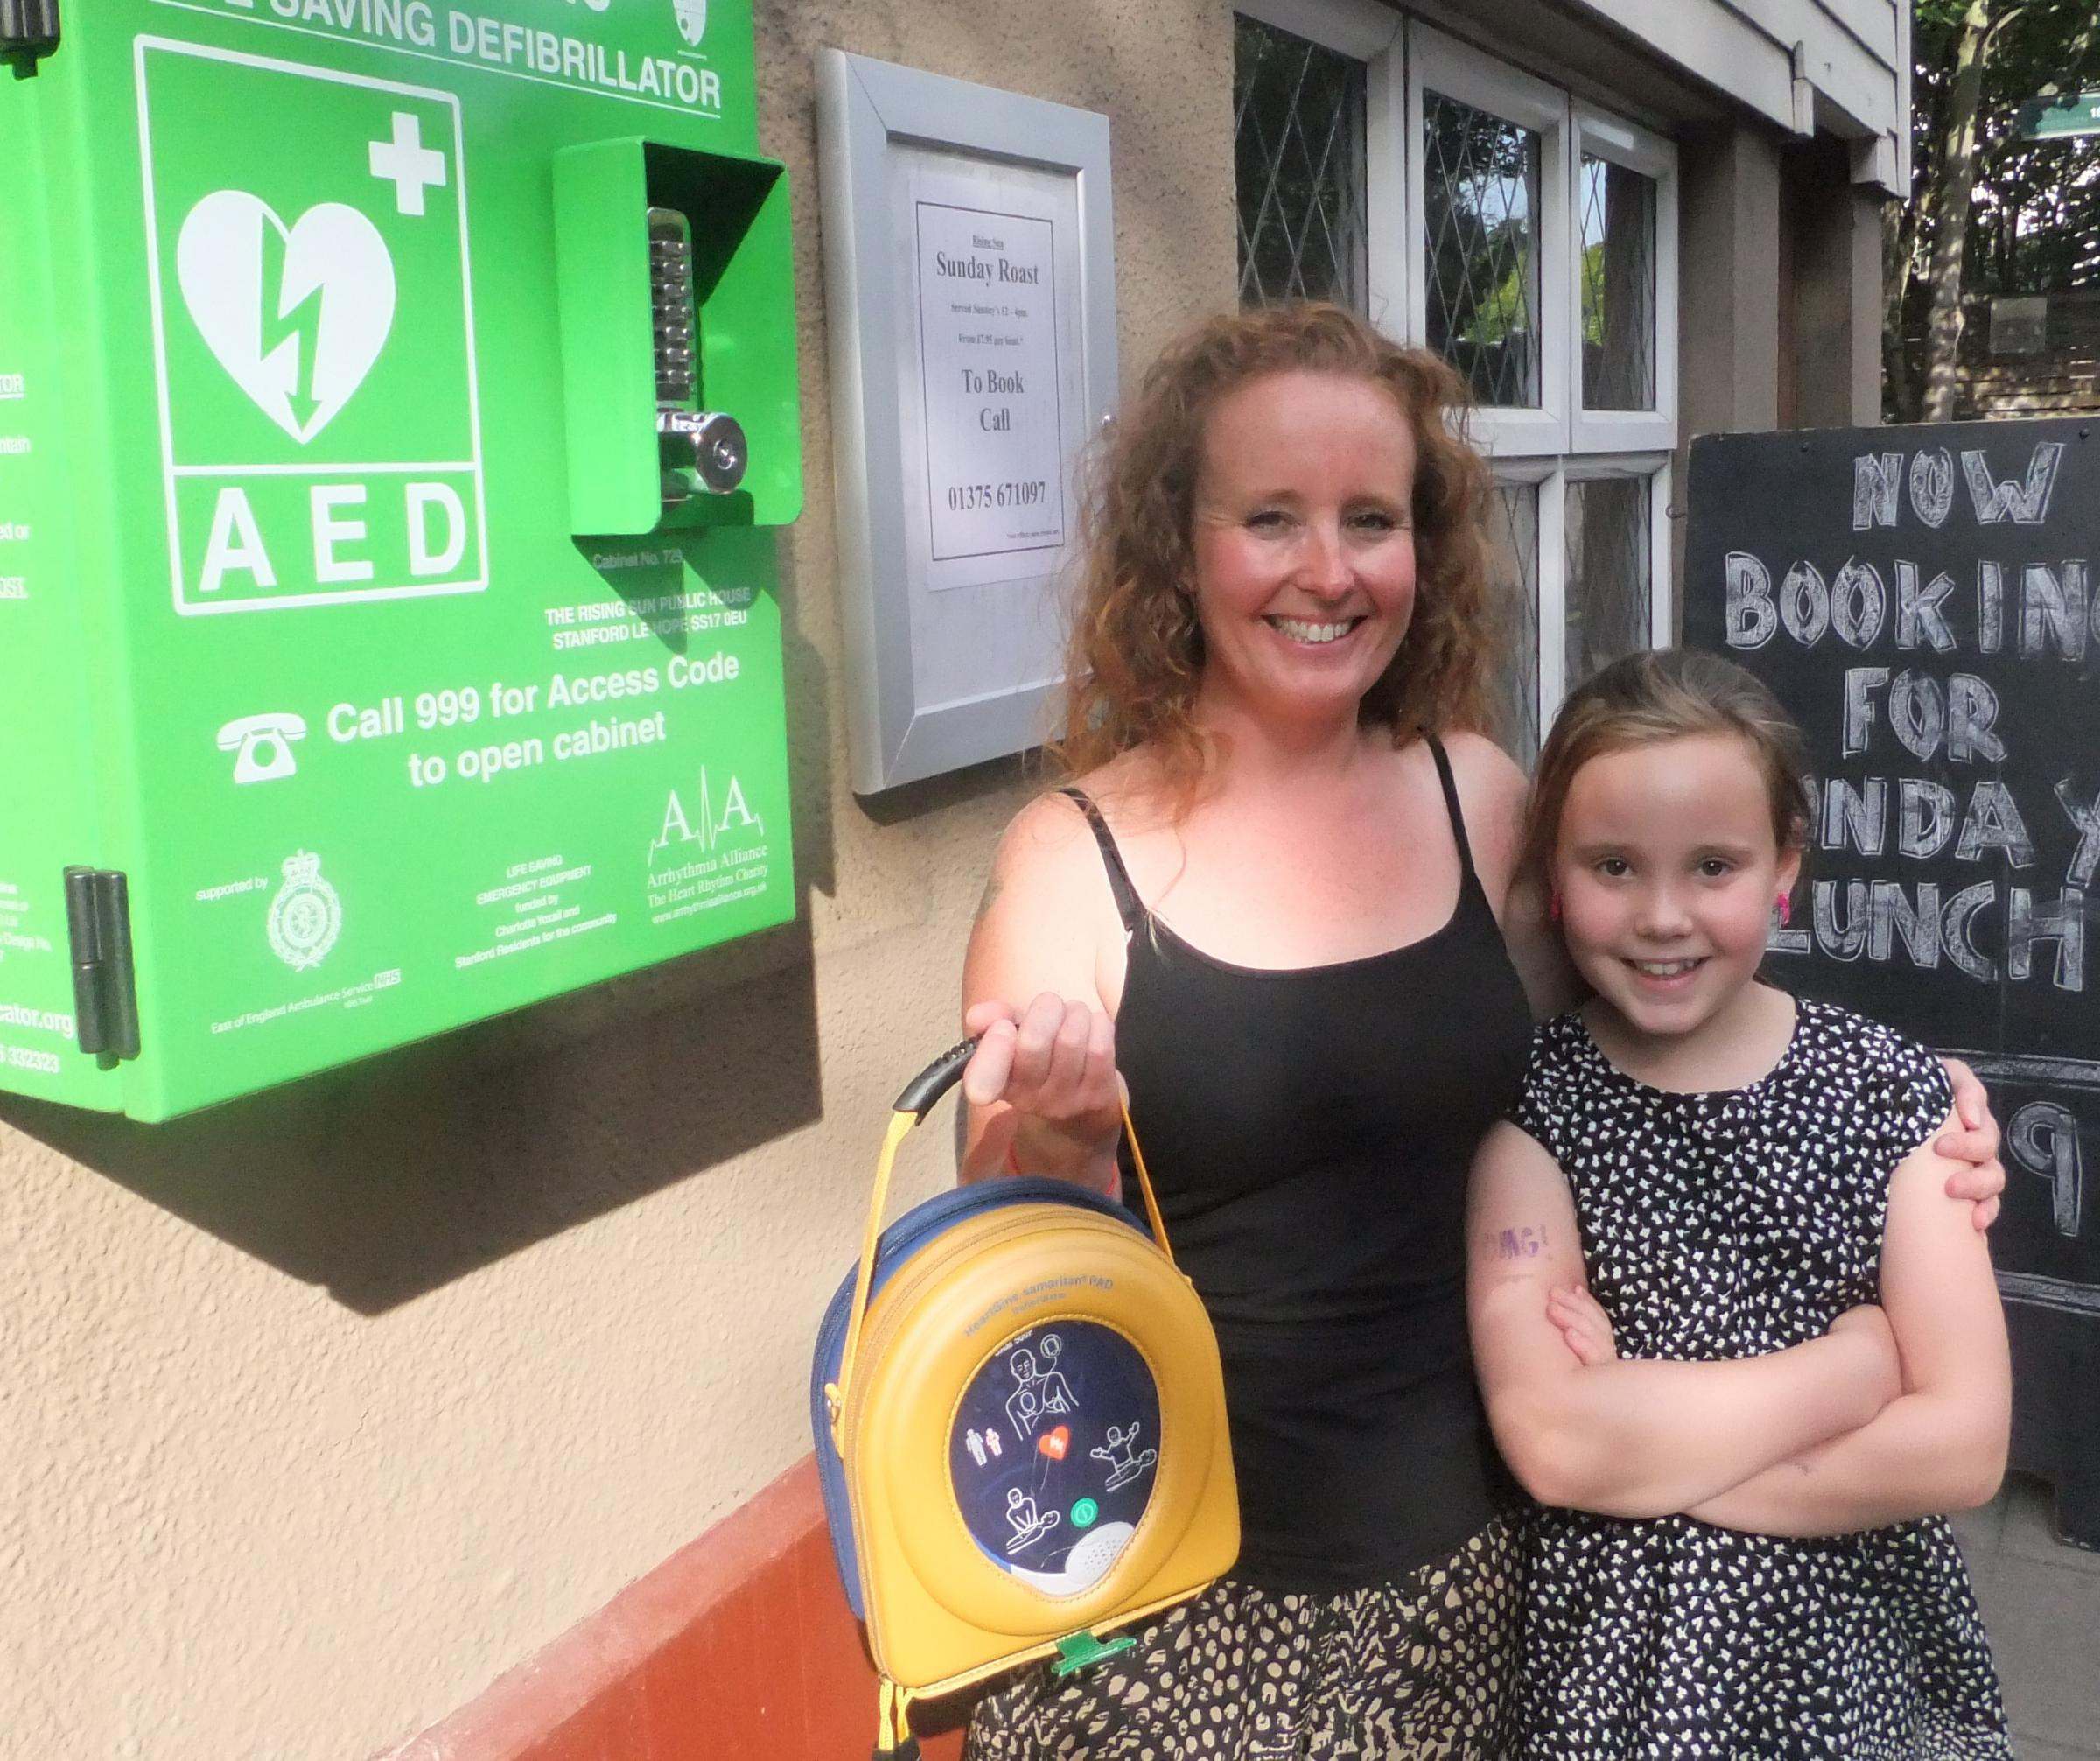 Charlotte and her daughter Katie with the defibrillator at the Rising Sun pub in Stanford-le-Hope.